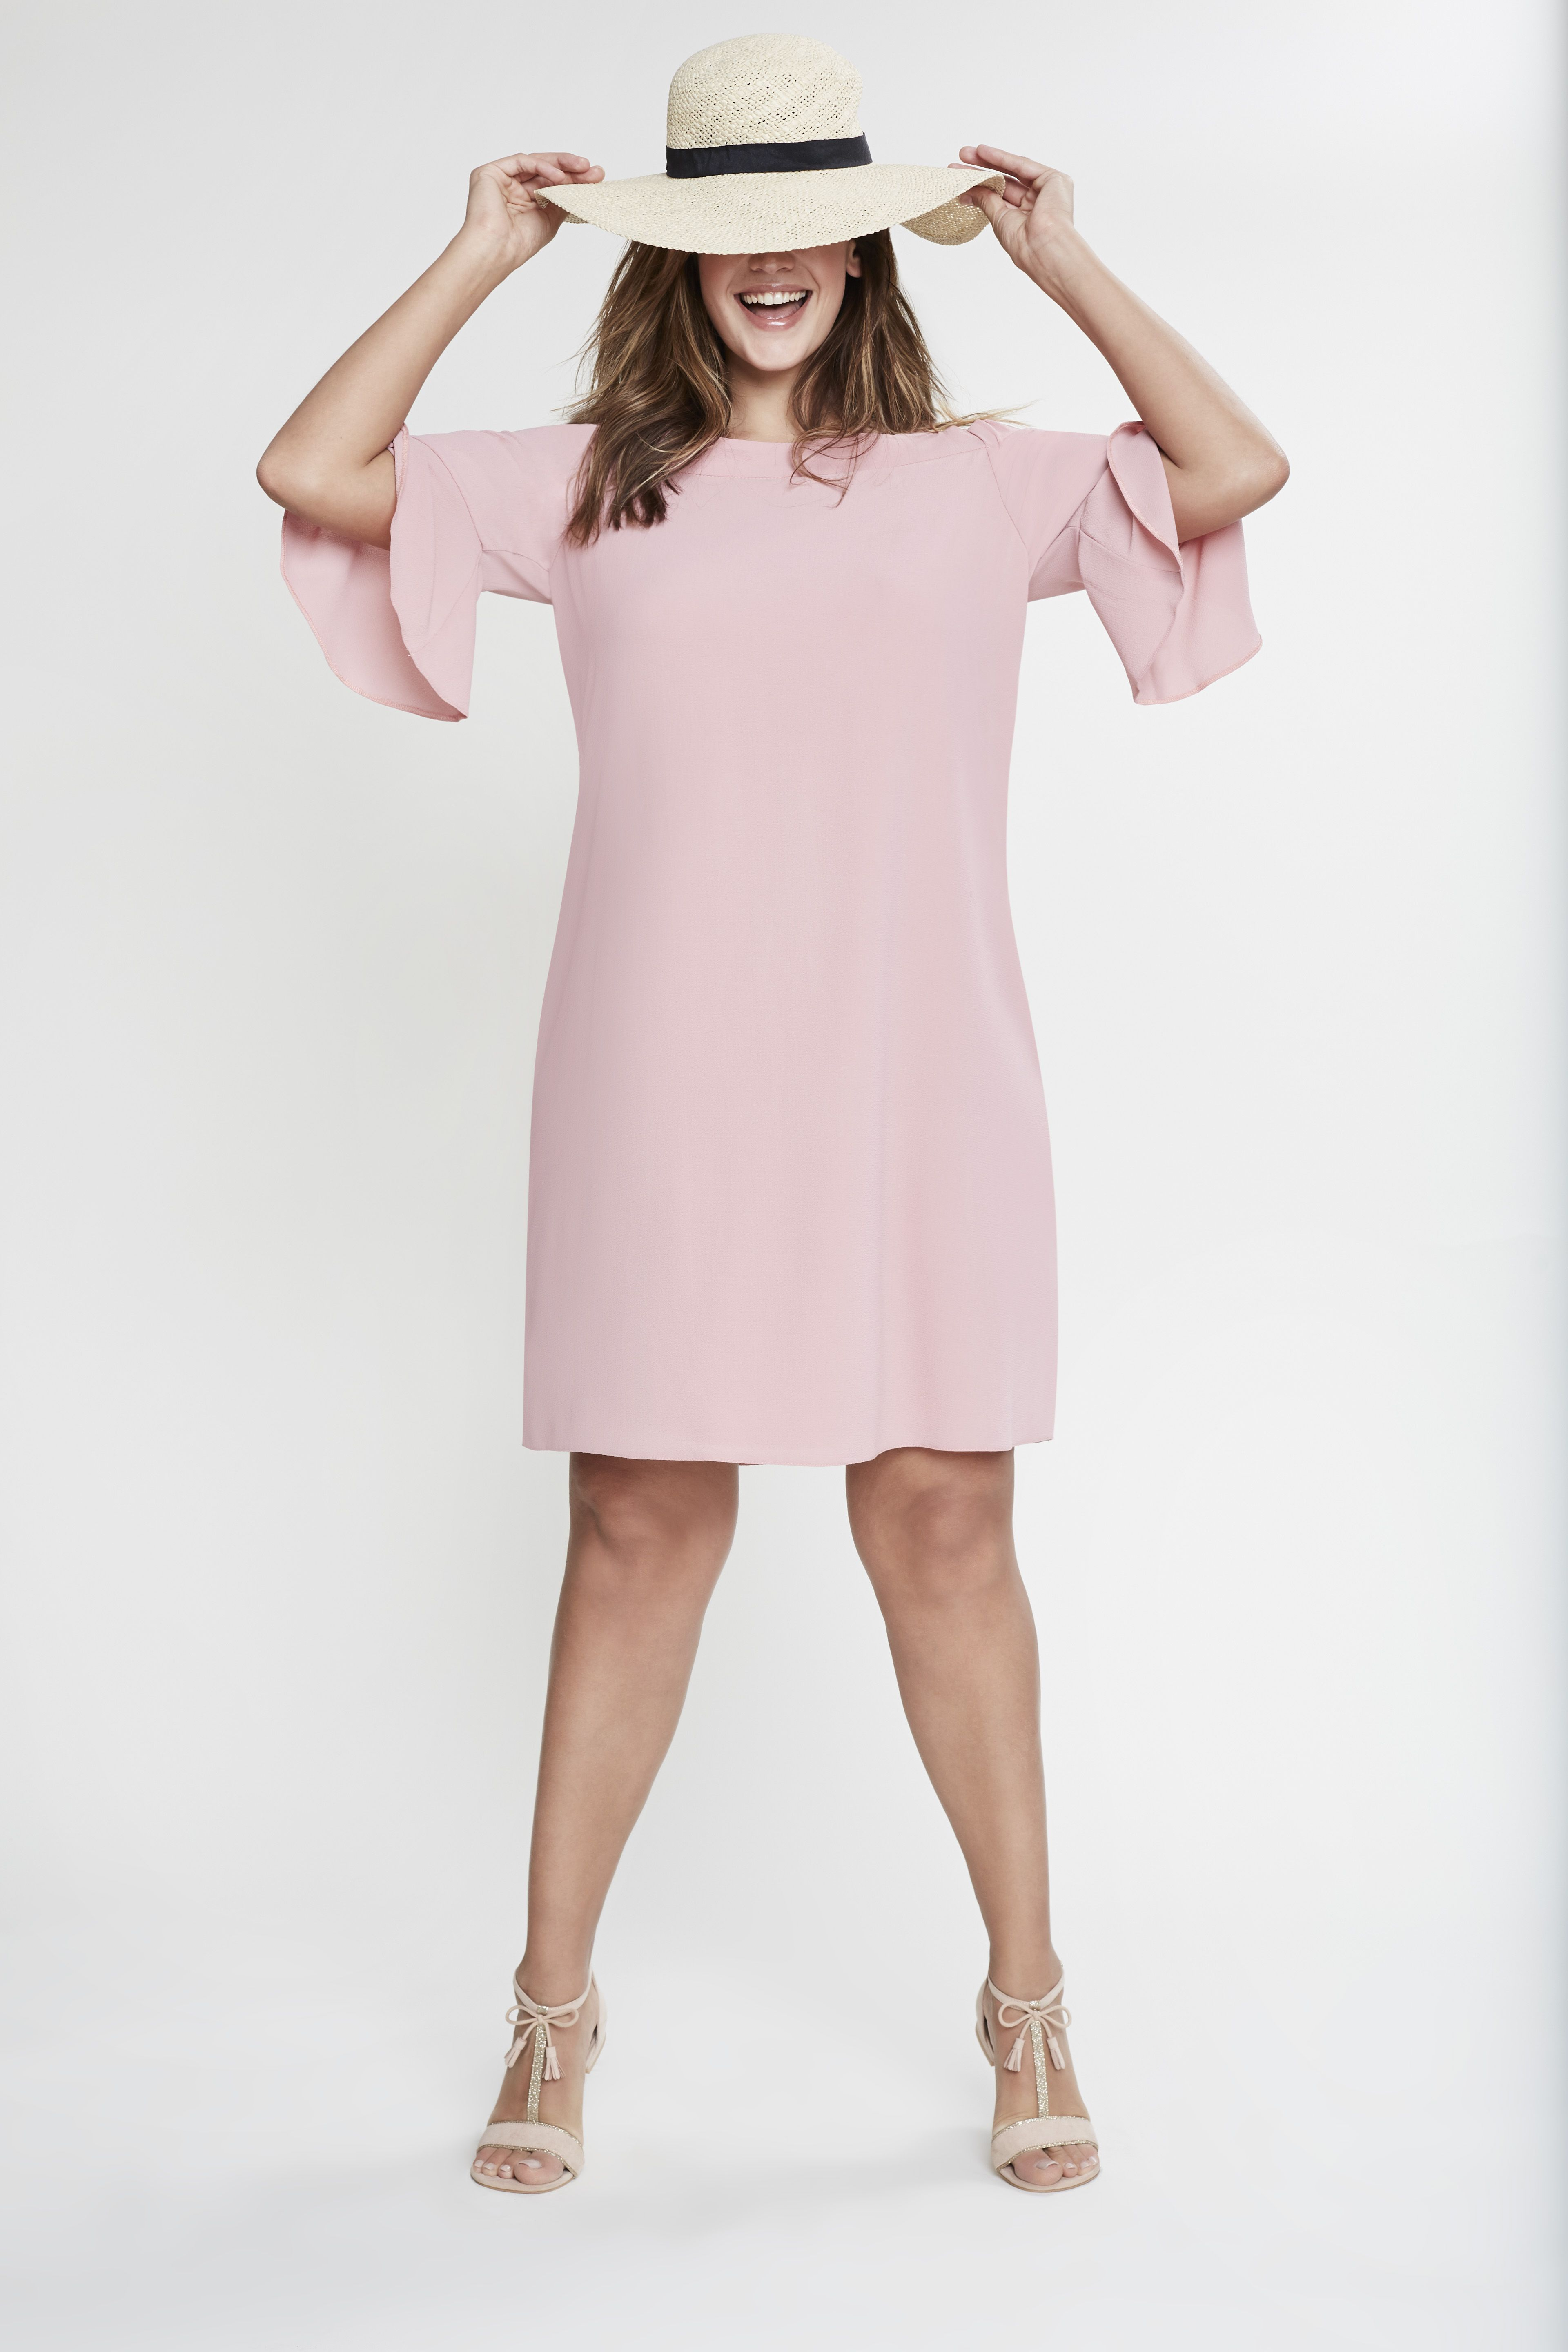 Pink cut out dress kim kardashian  Our Pink Cold Shoulder Dress is the perfect centre court outfit